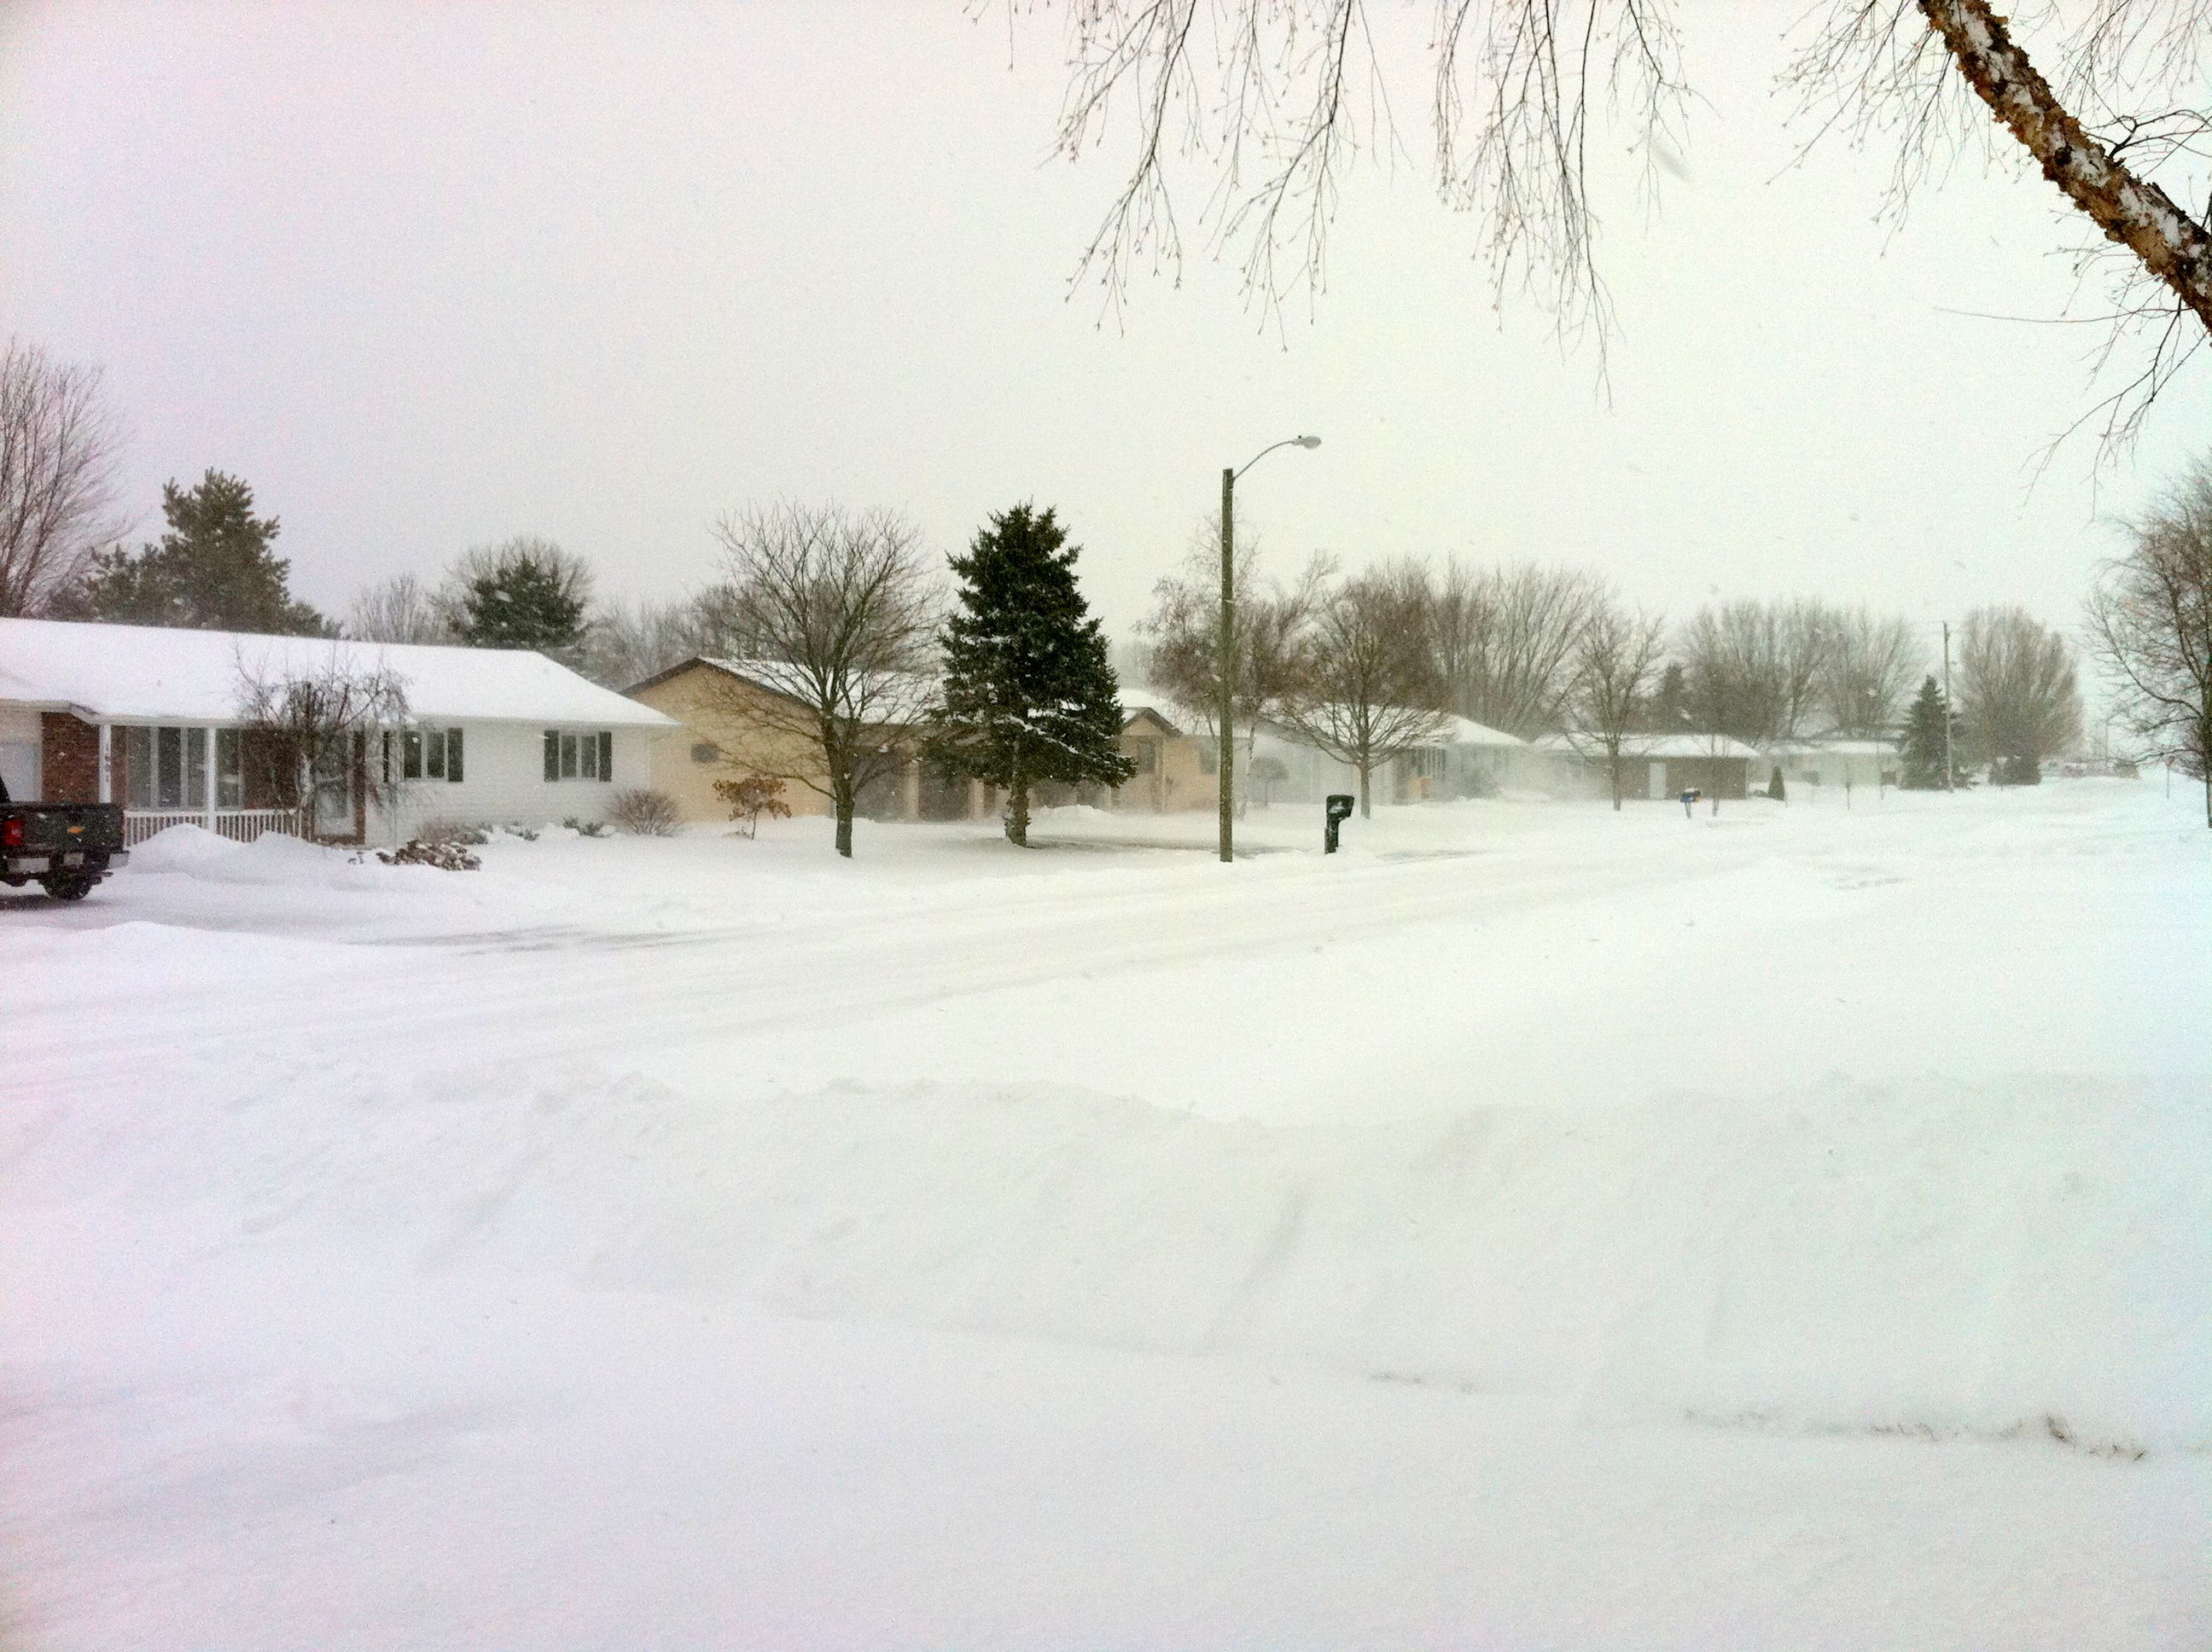 My first blizzard at the end of the world